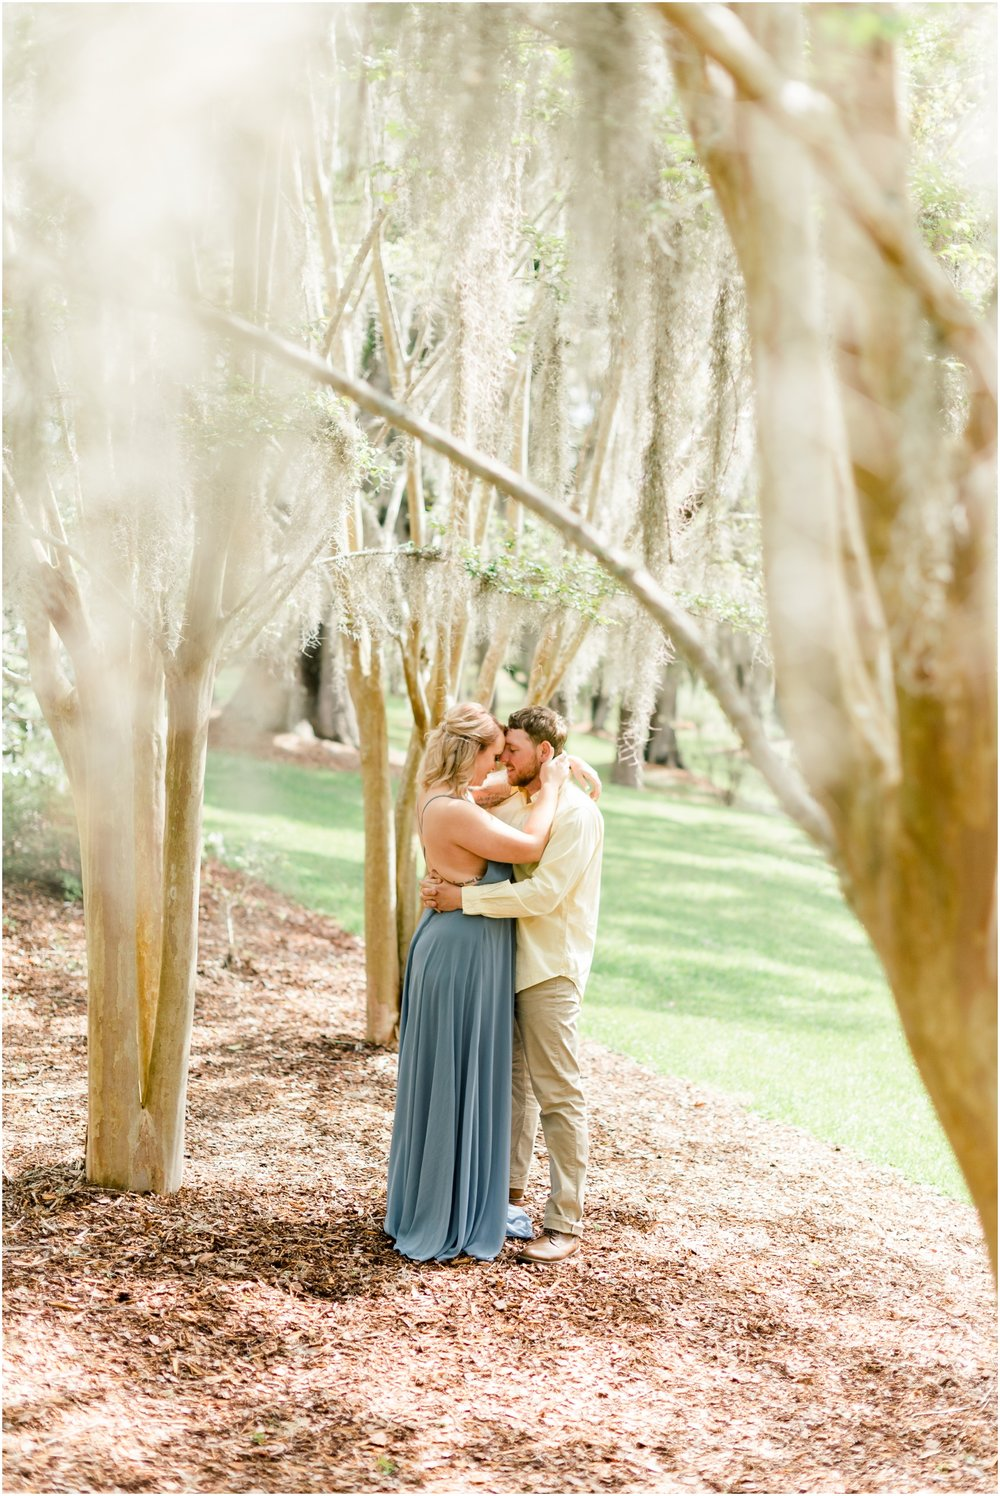 Mepkin-Abbey-Moncks-Corner-South-Carolina-Engagement-Session-Photos_0006.jpg